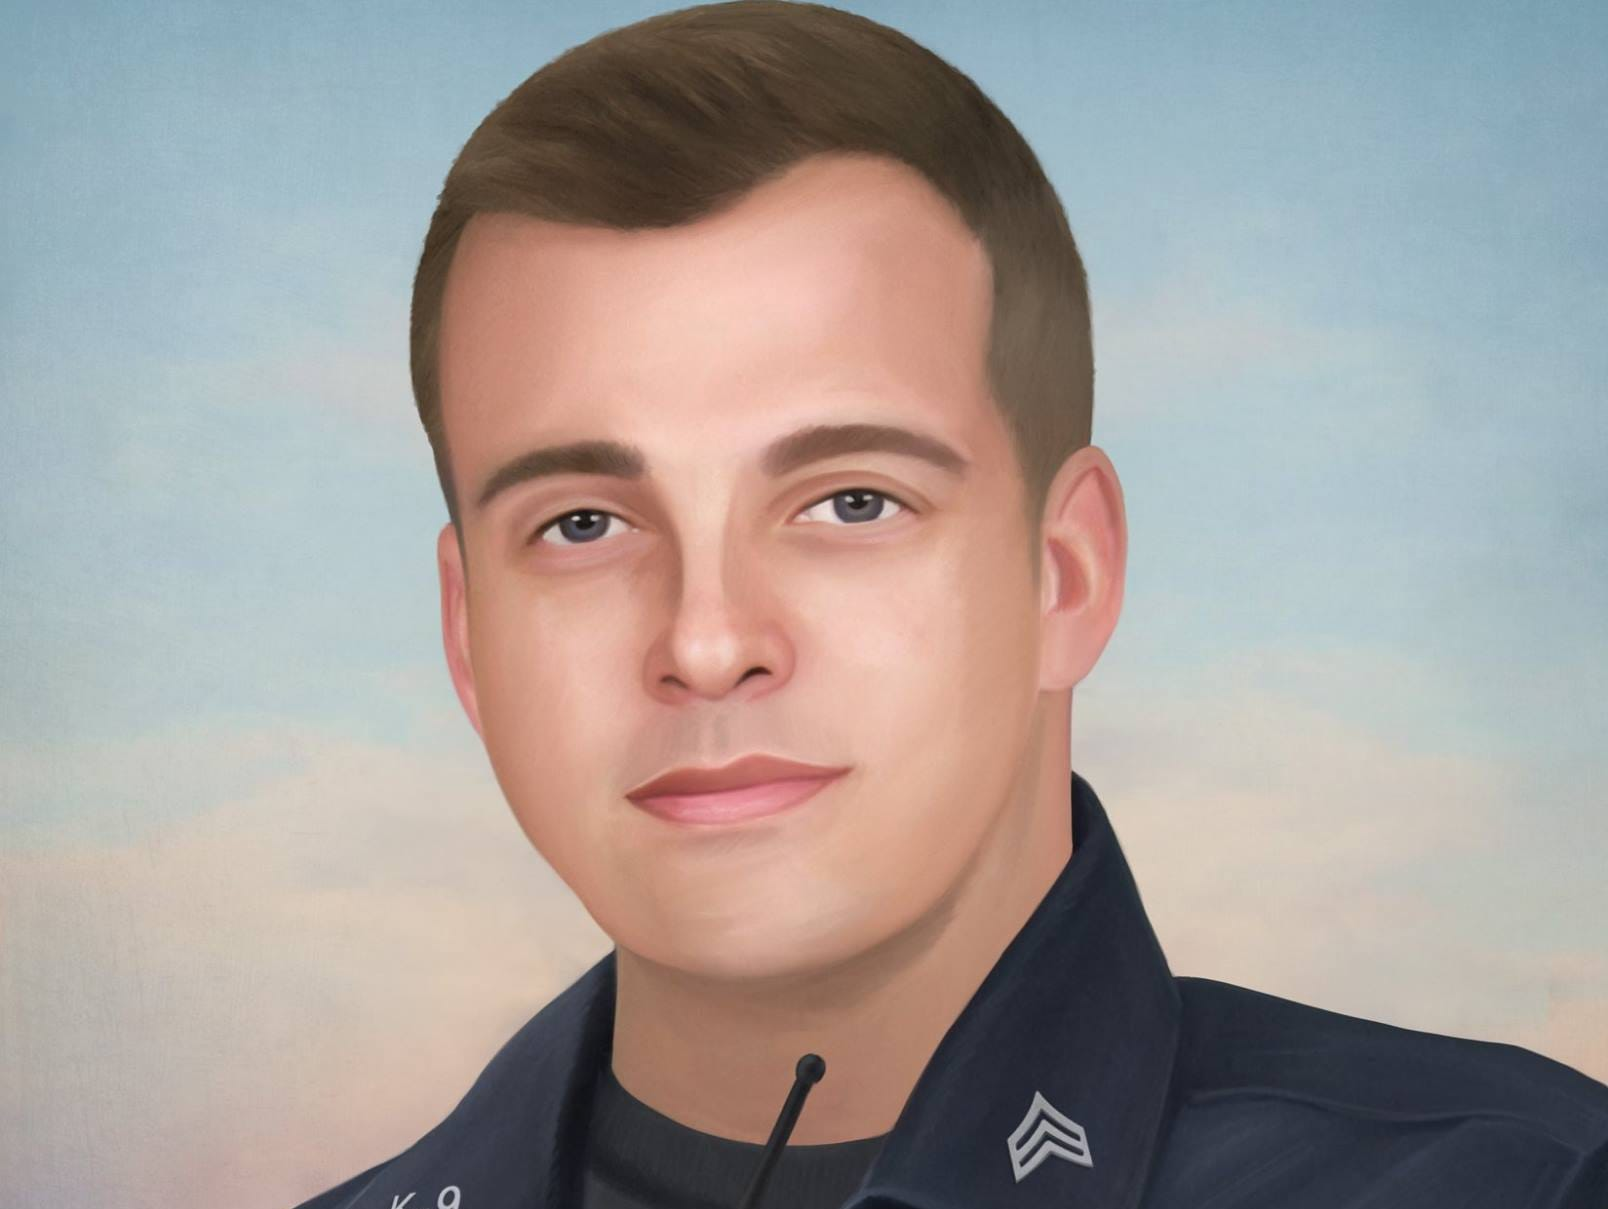 On December 12th, Charlestown (Indiana) Police Sergeant Benton Bertram attempted to pull over a stolen vehicle when the driver took off. During the pursuit, Ben lost control of his patrol vehicle and struck a tree. Several officers responded and tried to render aid but Sergeant Bertram's injuries were too severe and he died at the scene. 